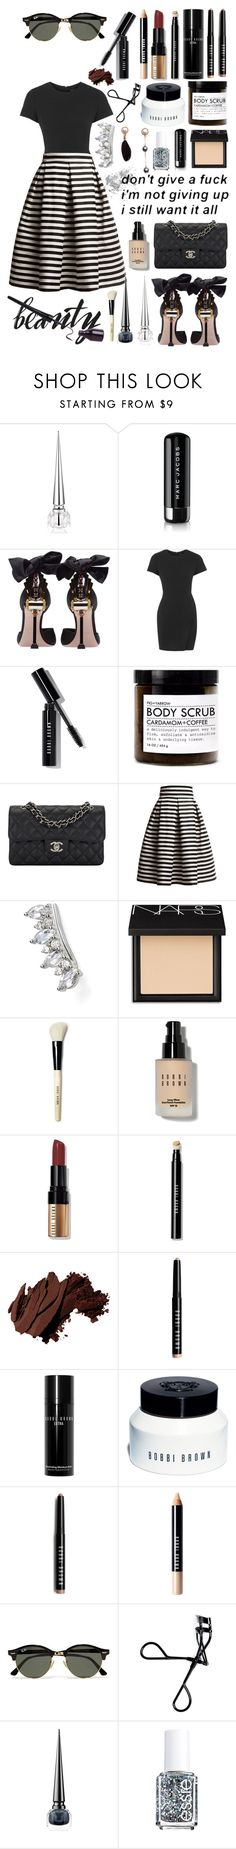 """""""I still want it all! #152"""" by lauren-yarrow ❤ liked on Polyvore featuring Christian Louboutin, Marc Jacobs, Miu Miu, Topshop, Bobbi Brown Cosmetics, Fig+Yarrow, Chanel, Rumour London, Meira T and NARS Cosmetics"""